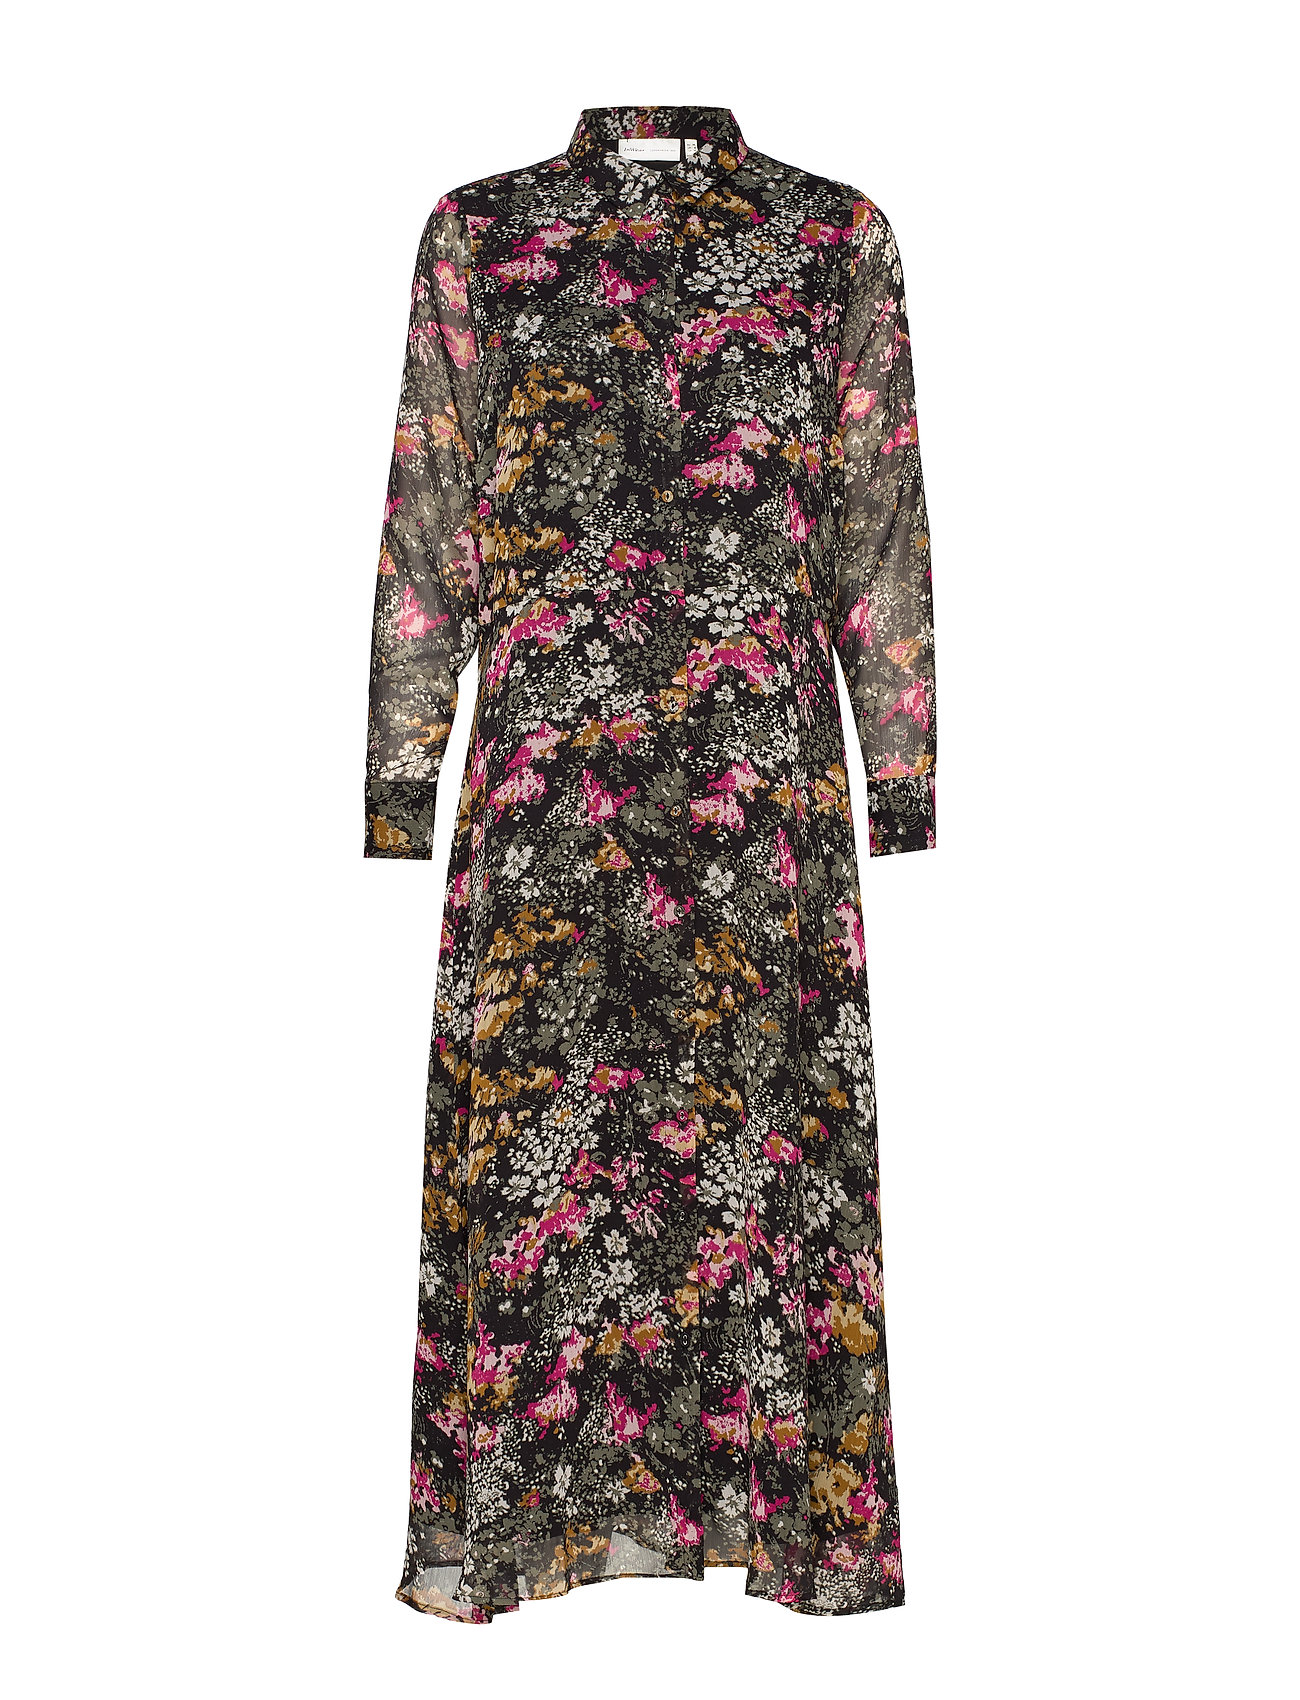 InWear KairaIW Long Dress - FLOWER EXPLOSION